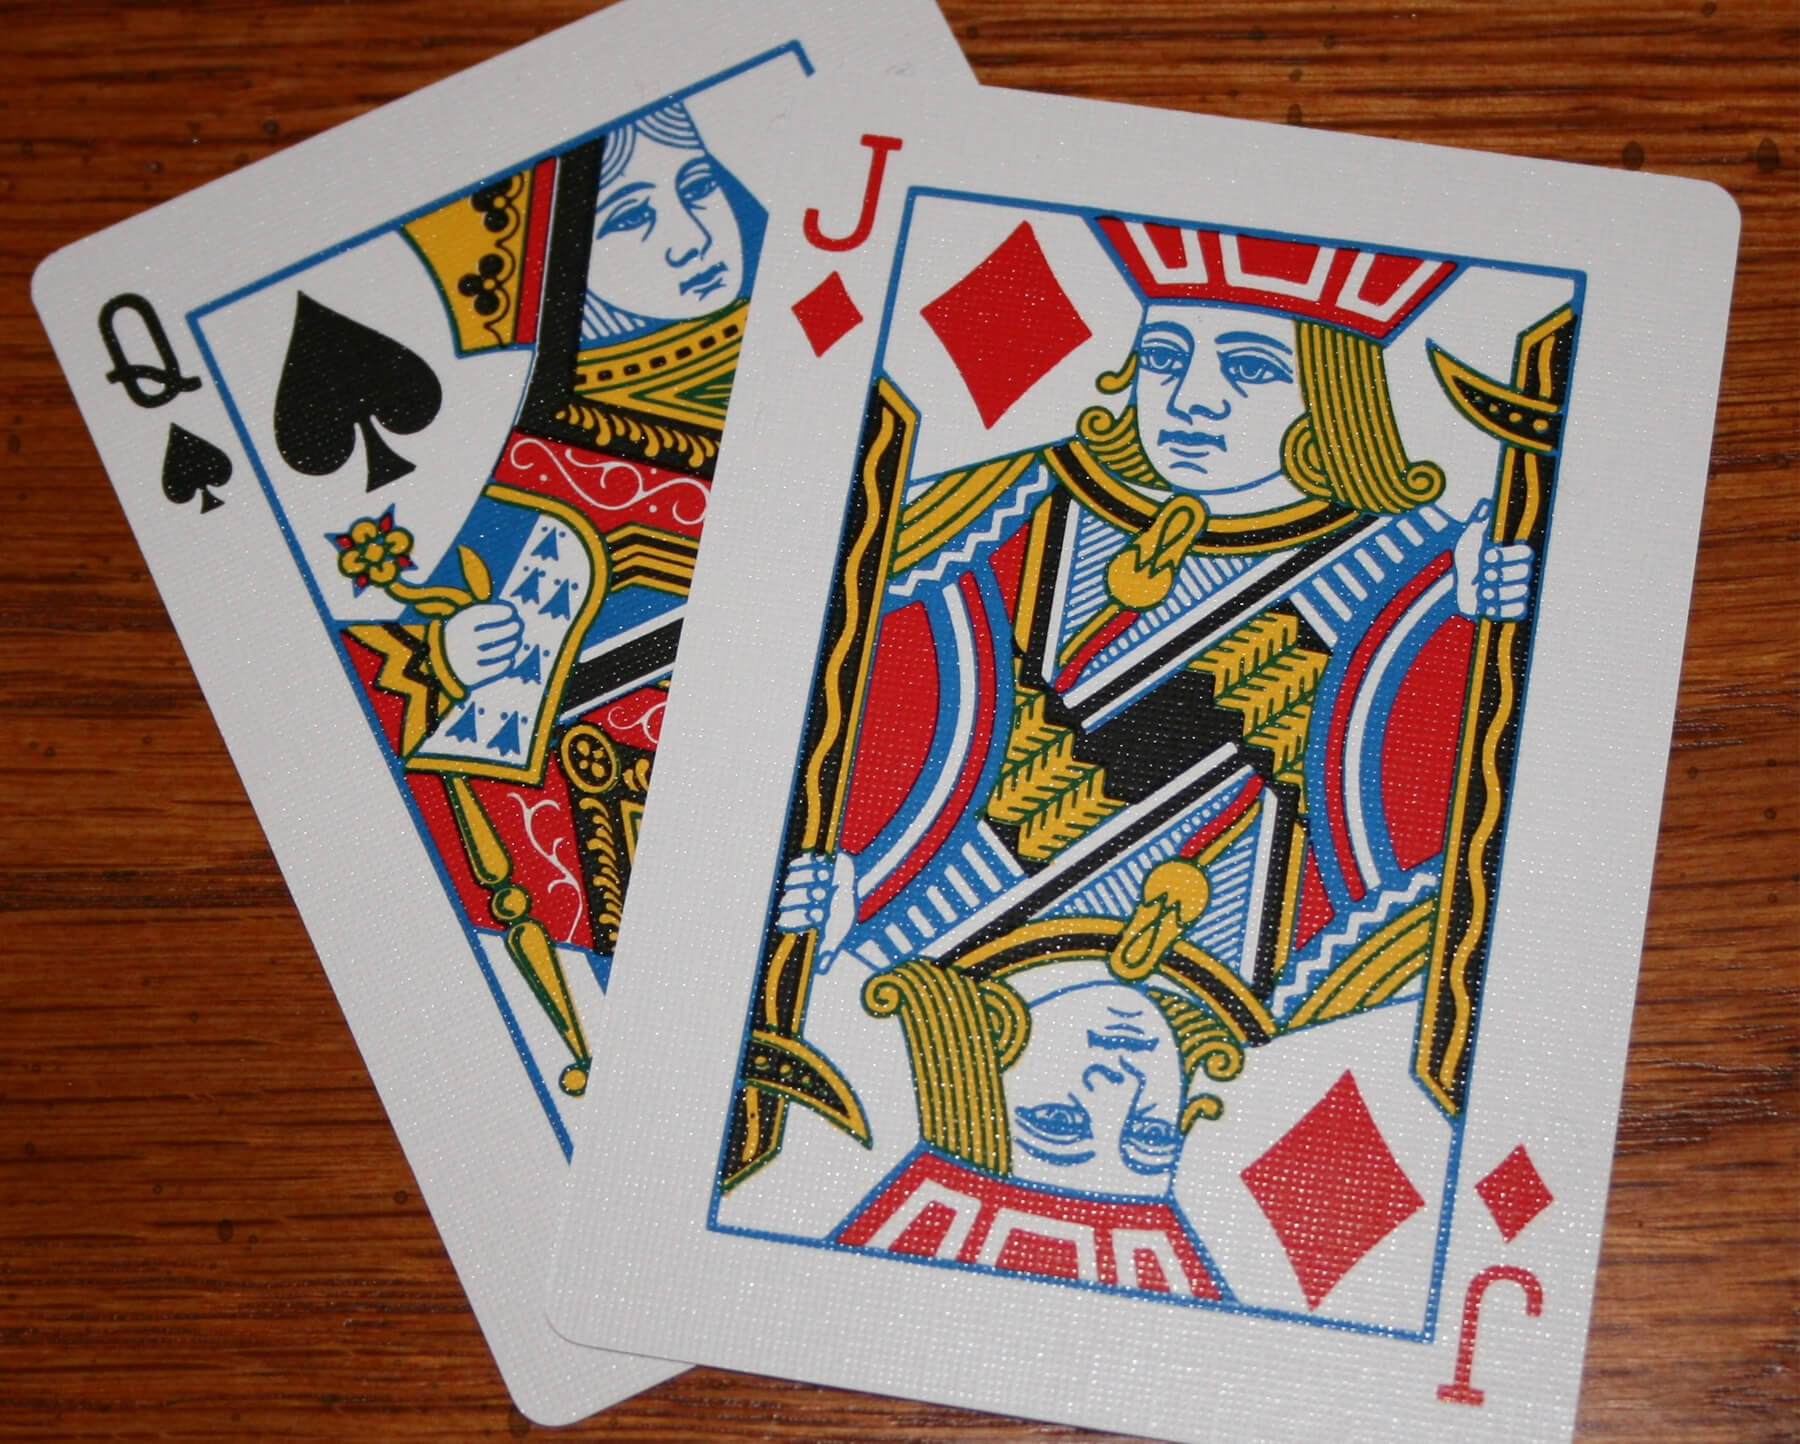 A queen of aces and jack of diamonds card.